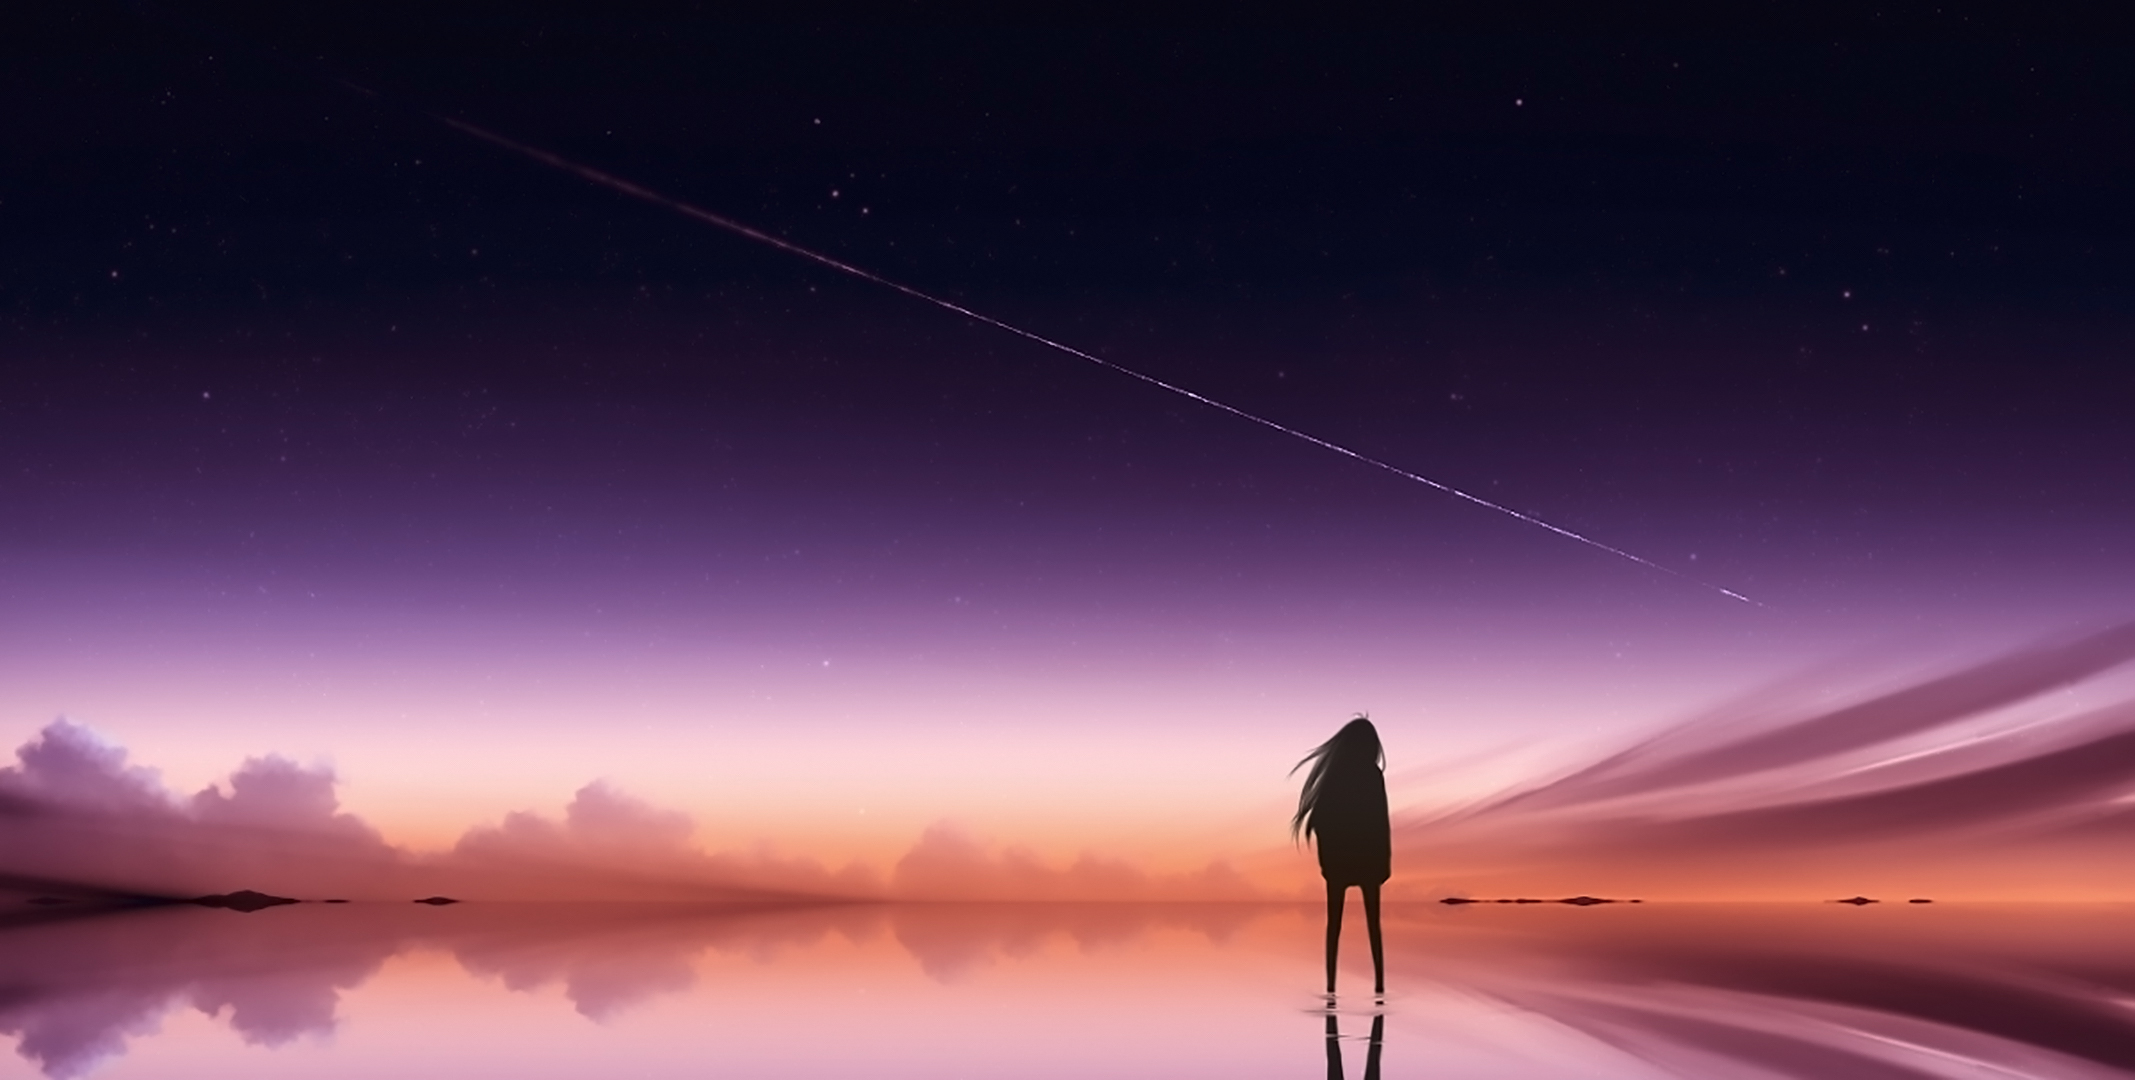 Anime Alone Wallpaper Hd